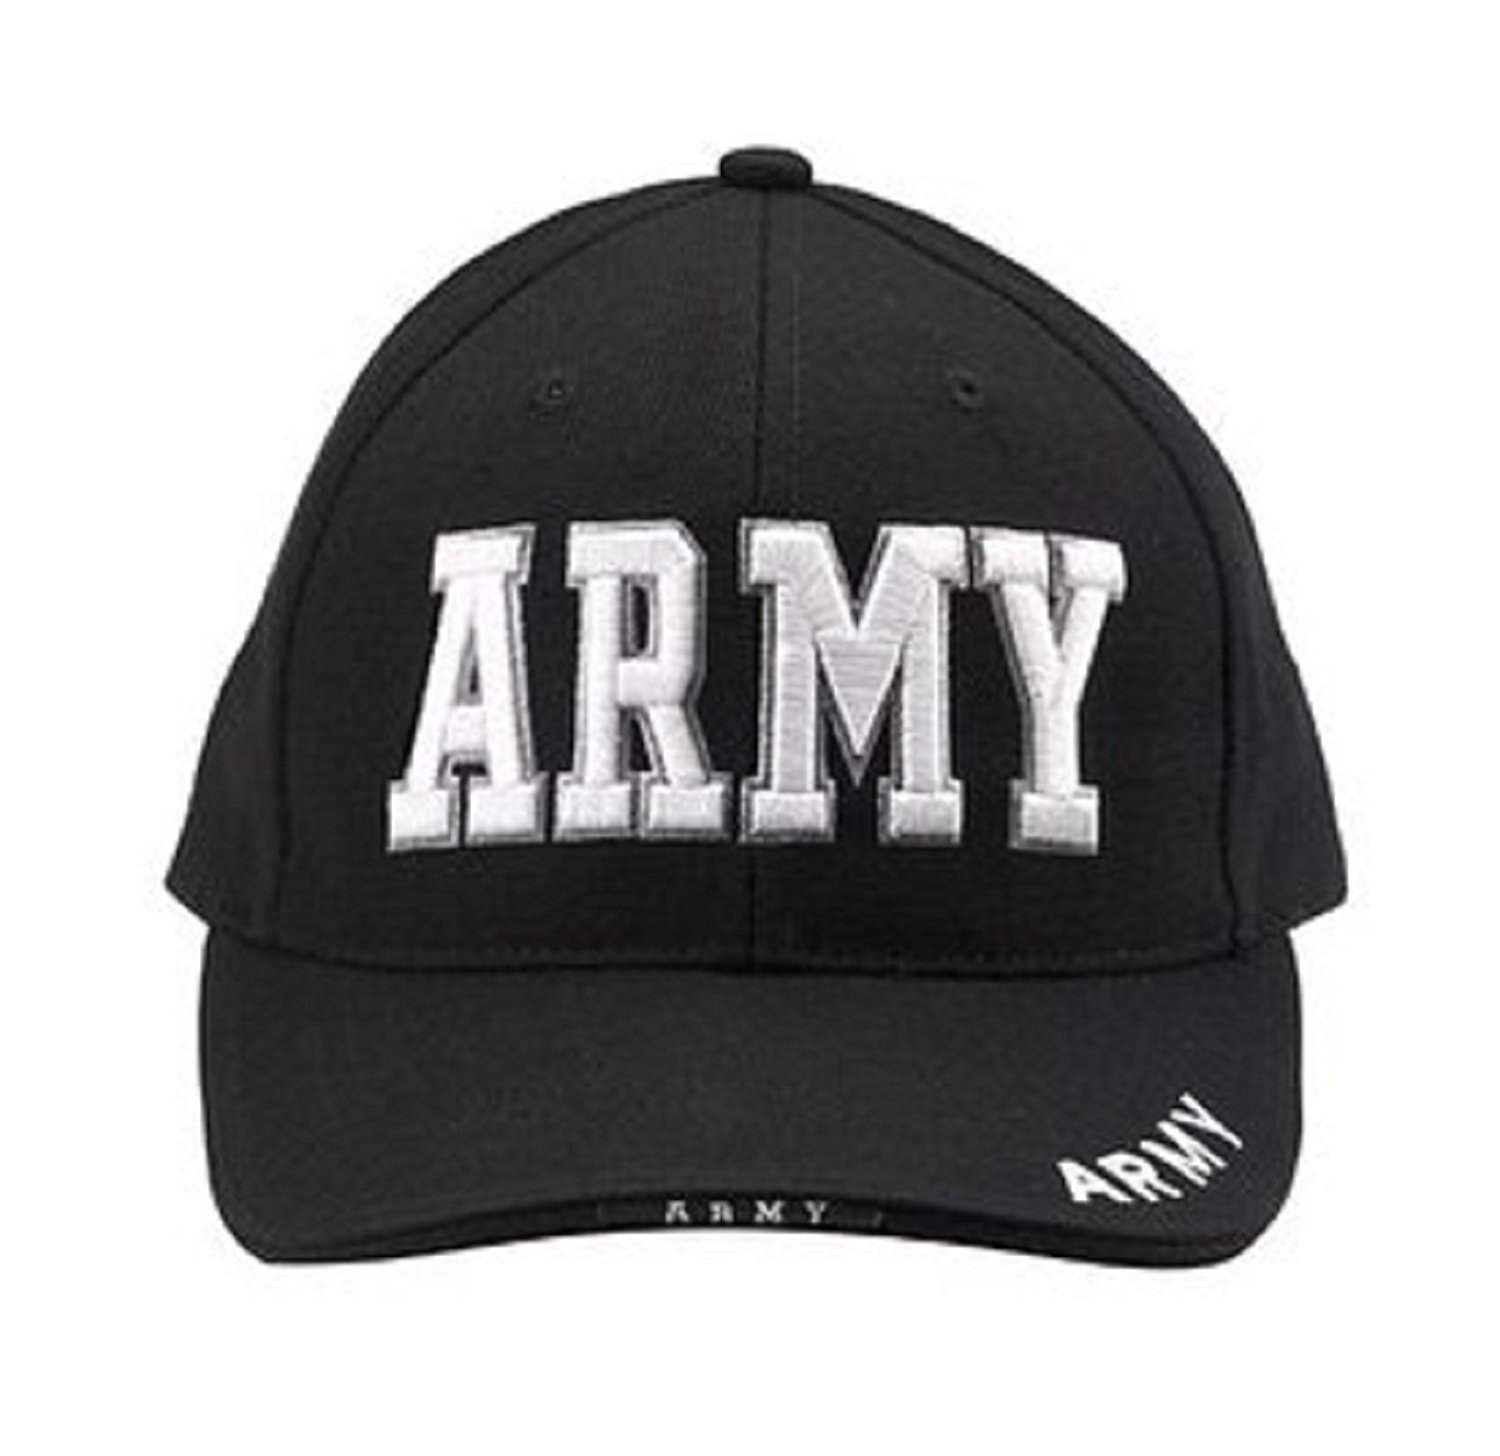 Rothco Deluxe Army Embroidered Low Profile Insignia Cap - Black 16575ec5248f